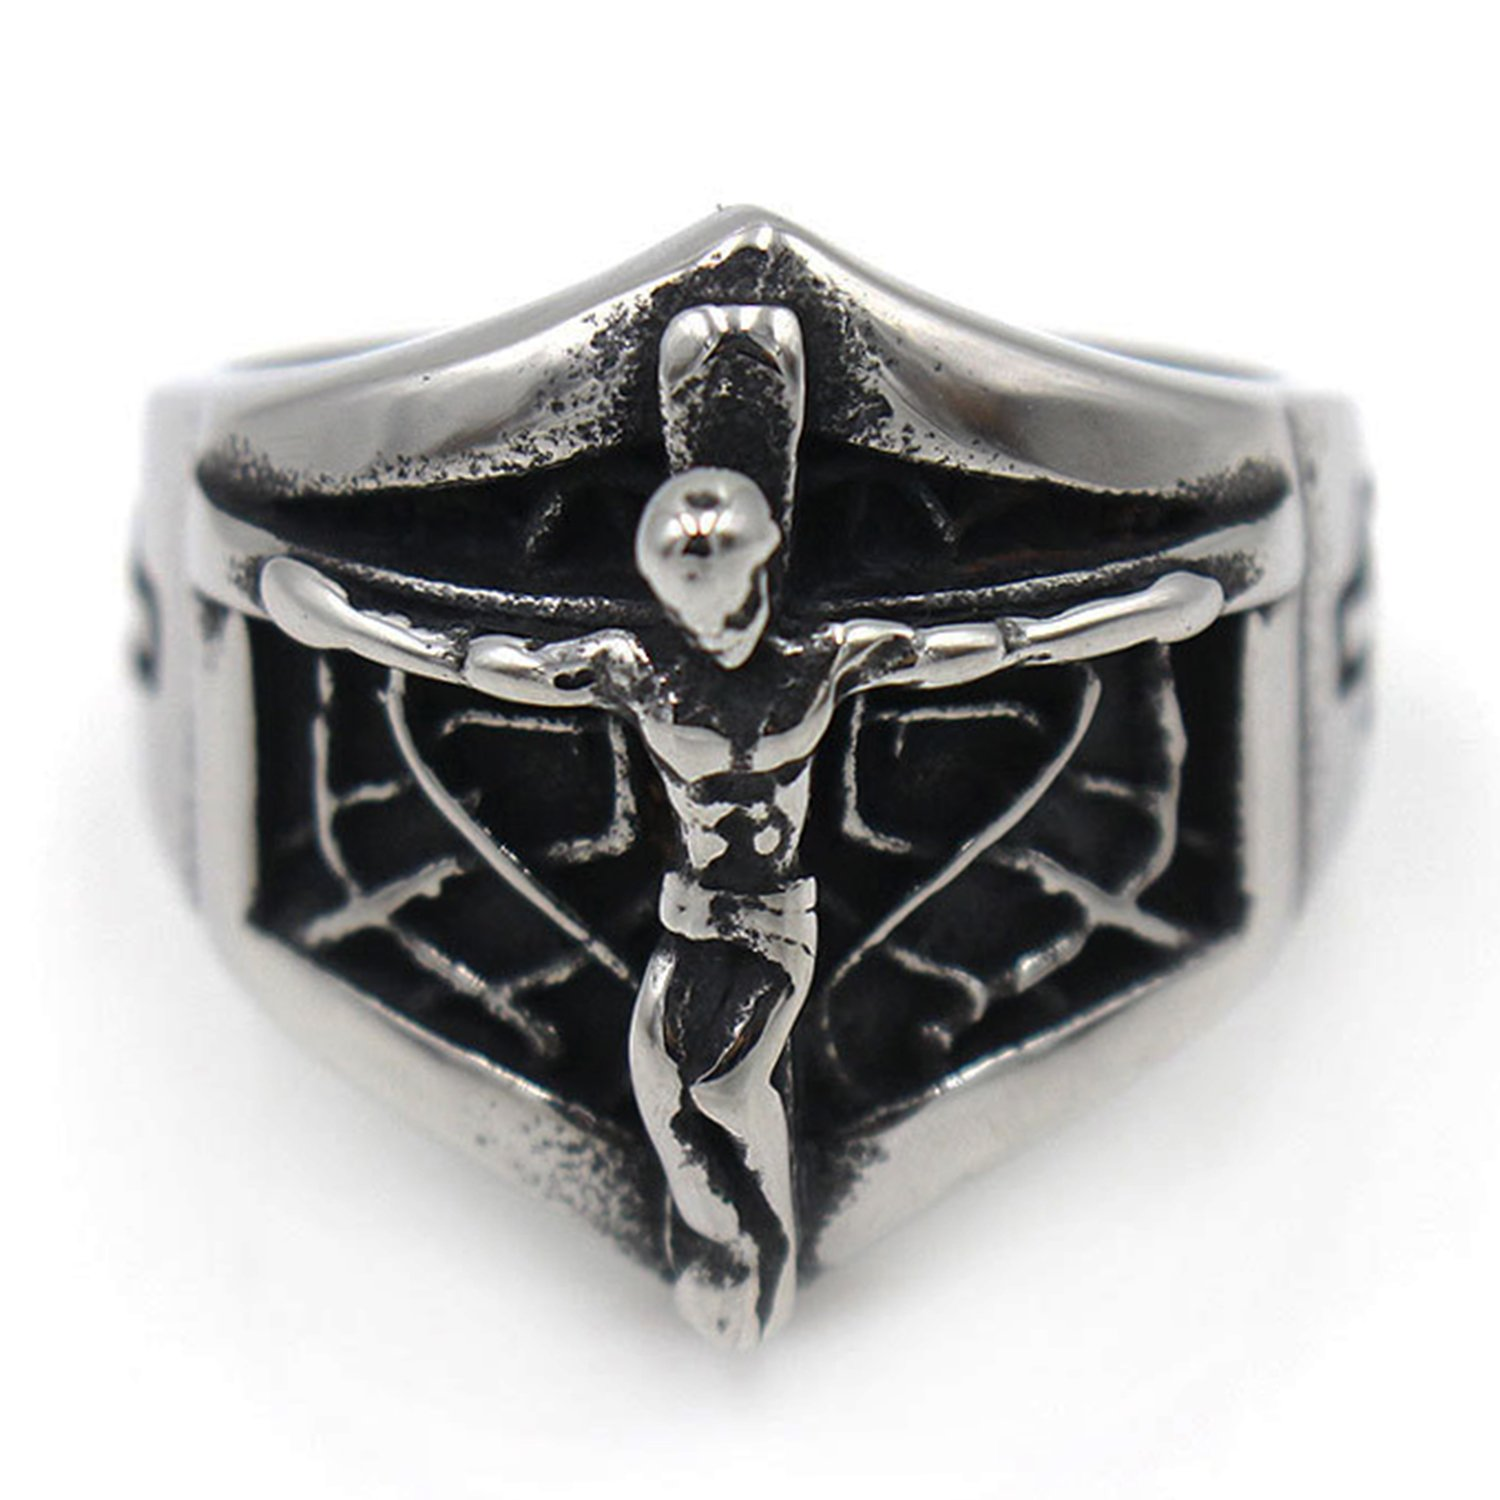 LILILEO Jewelry Stainless Steel Men's Rings Retro Spider Web Jesus Cross Religious Ring by LILILEO